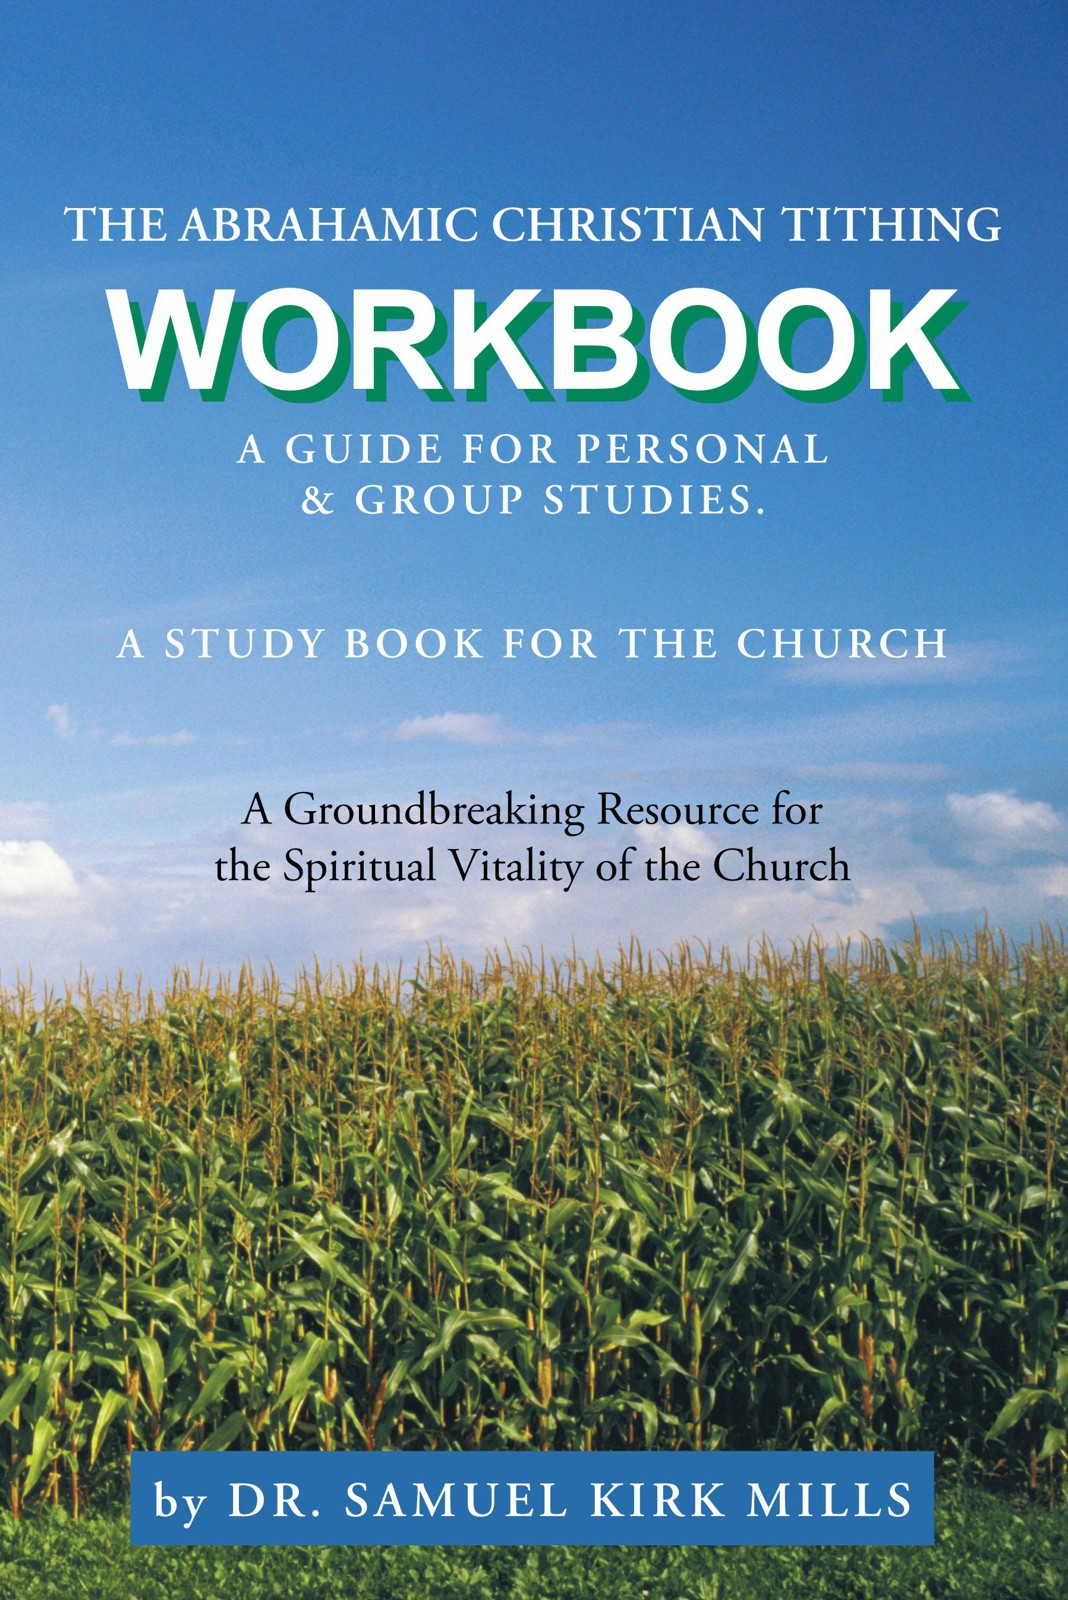 The Abrahamic Christian Tithing: Workbook